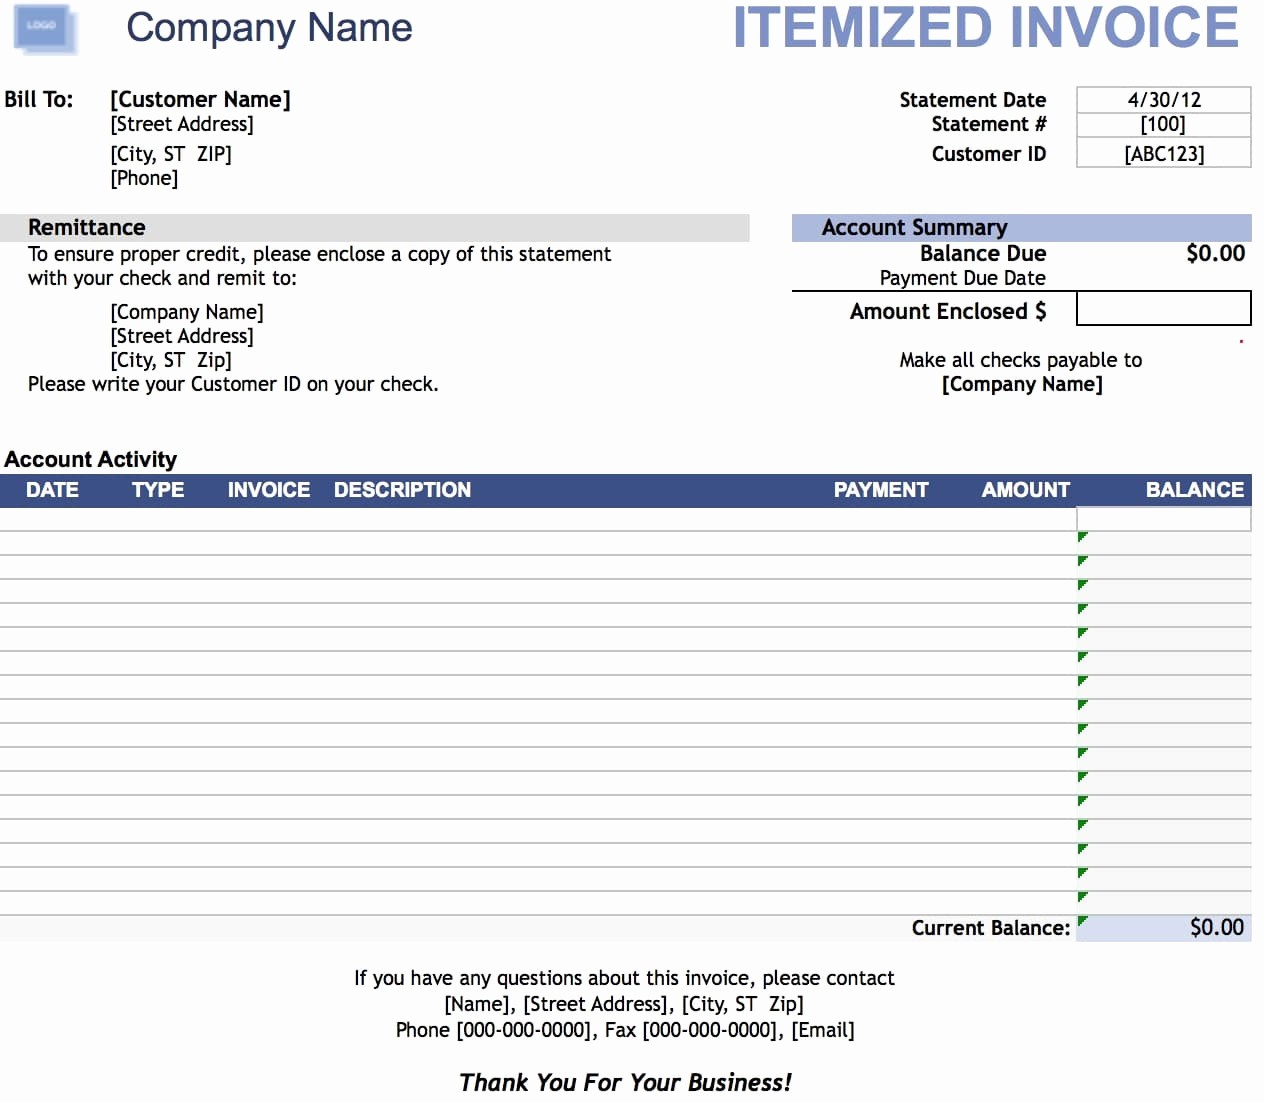 Itemized Bill Template Microsoft Word Lovely Free Itemized Invoice Template Excel Pdf